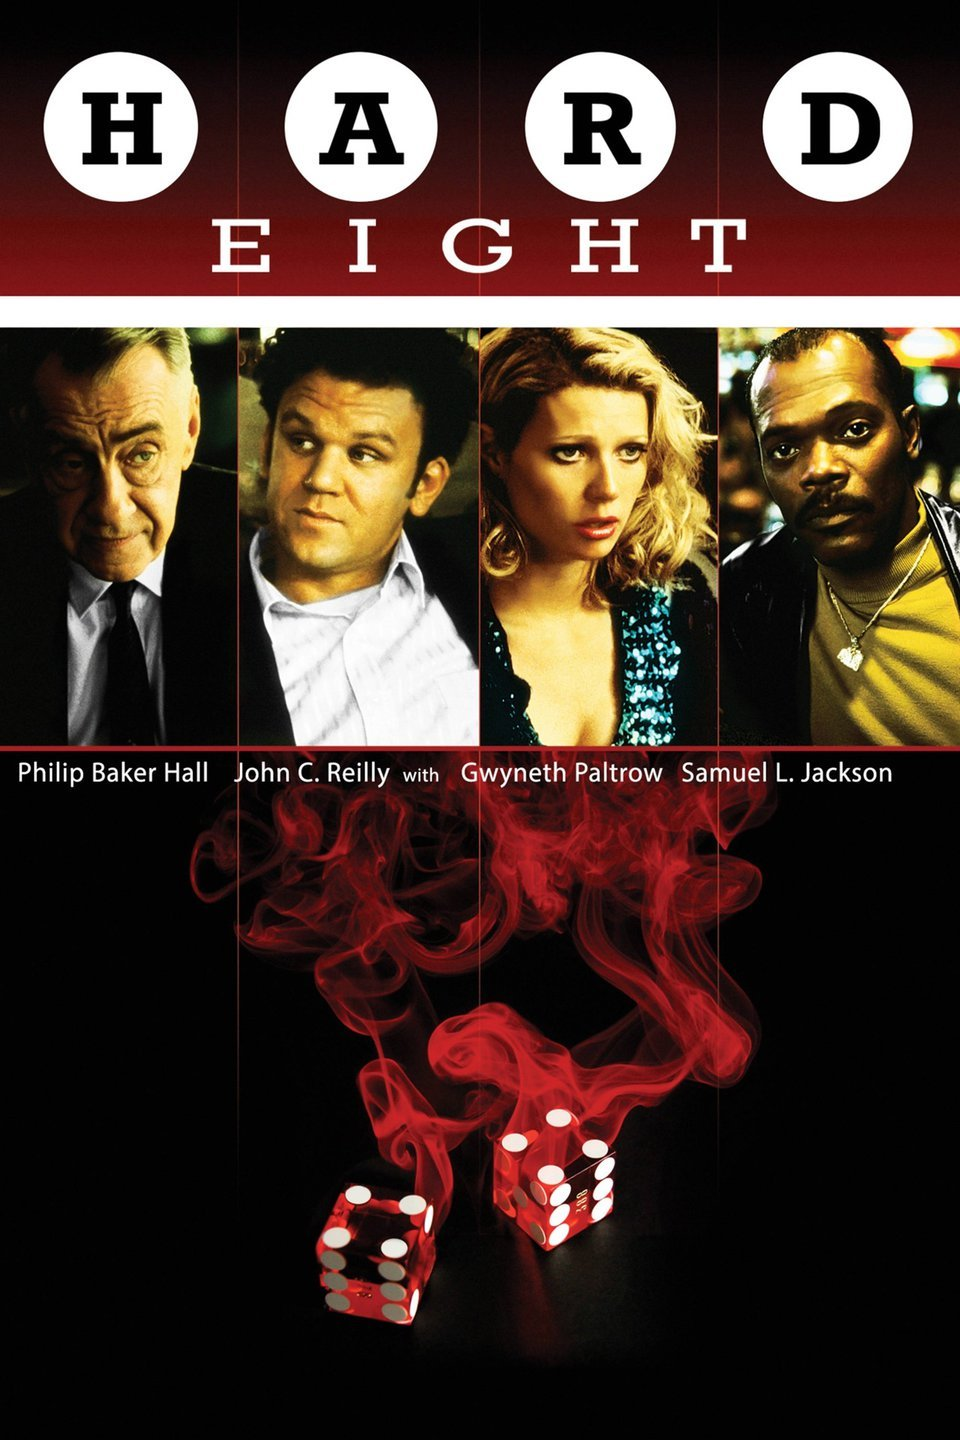 Hard Eight (1996) - Directed by: Paul Thomas AndersonStarring: John C. Reilly, Phillip Baker Hall, Gwyneth Paltrow, Samuel L. JacksonRated: R for Strong Language, Some Violence and SexualityRunning Time: 1h 42mTMM Score: 4.5 StarsSTRENGTHS: Directing, Cinematography, StoryWEAKNESSES: Ending Lacks Impact